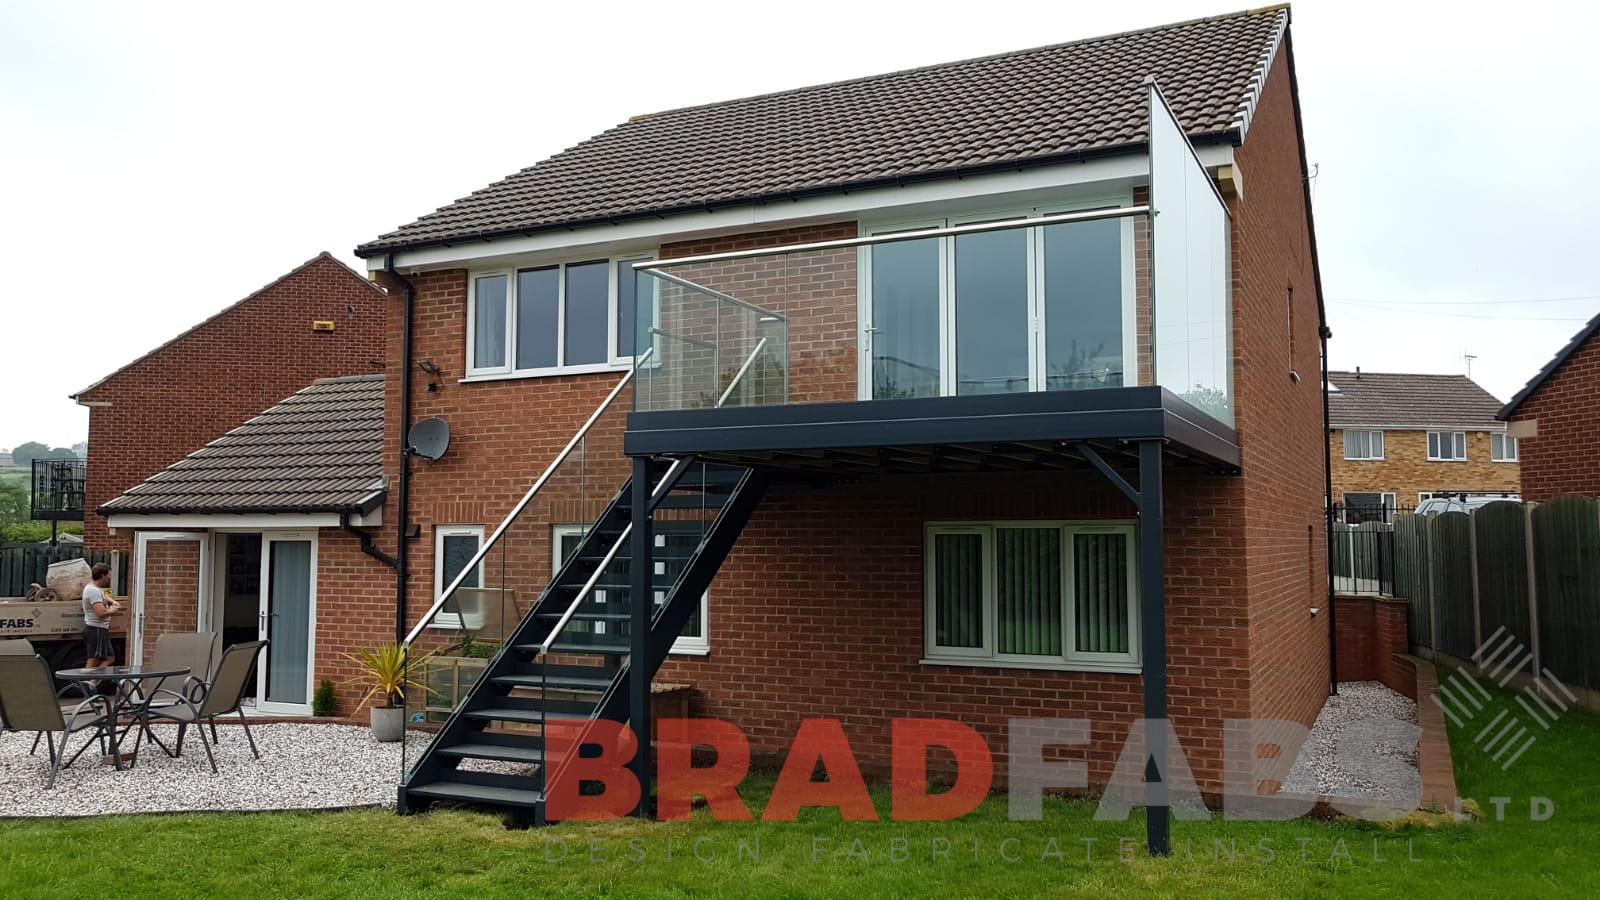 Garden access metal and glass balcony with staircase by Bradfabs